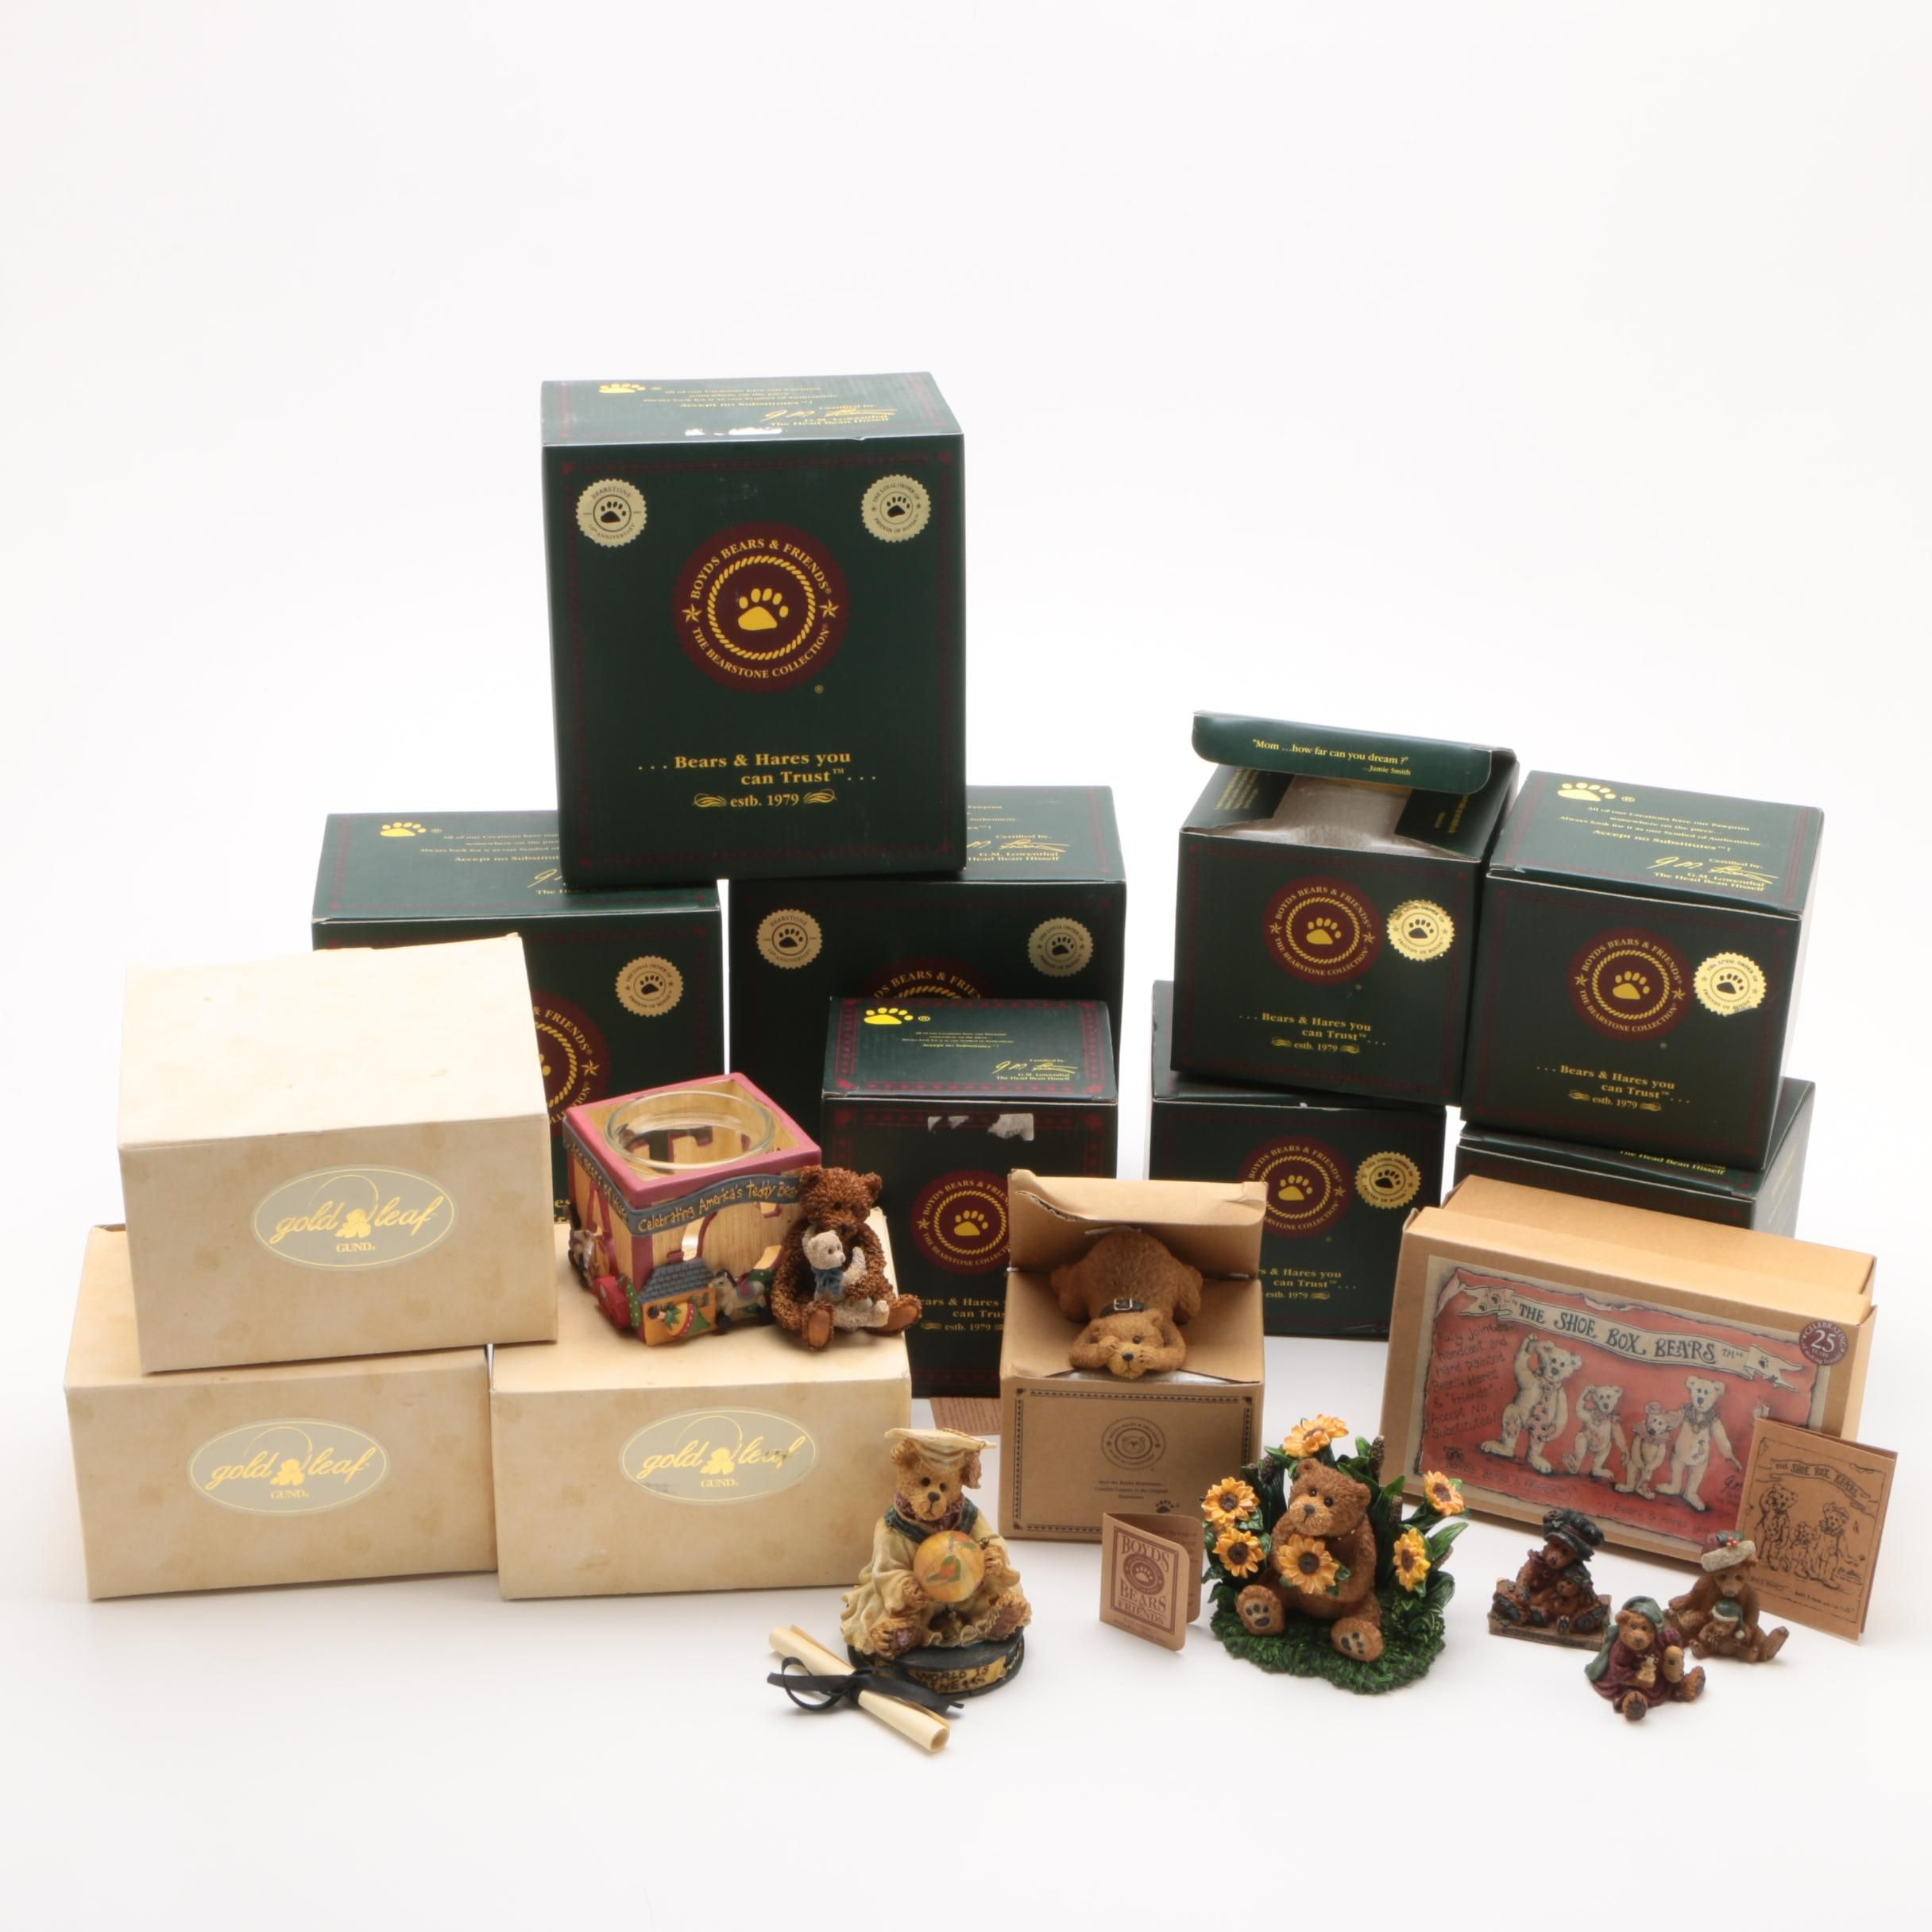 Boyds Bears & Friends and Gund Gold Leaf Resin Bear Figurine Collection